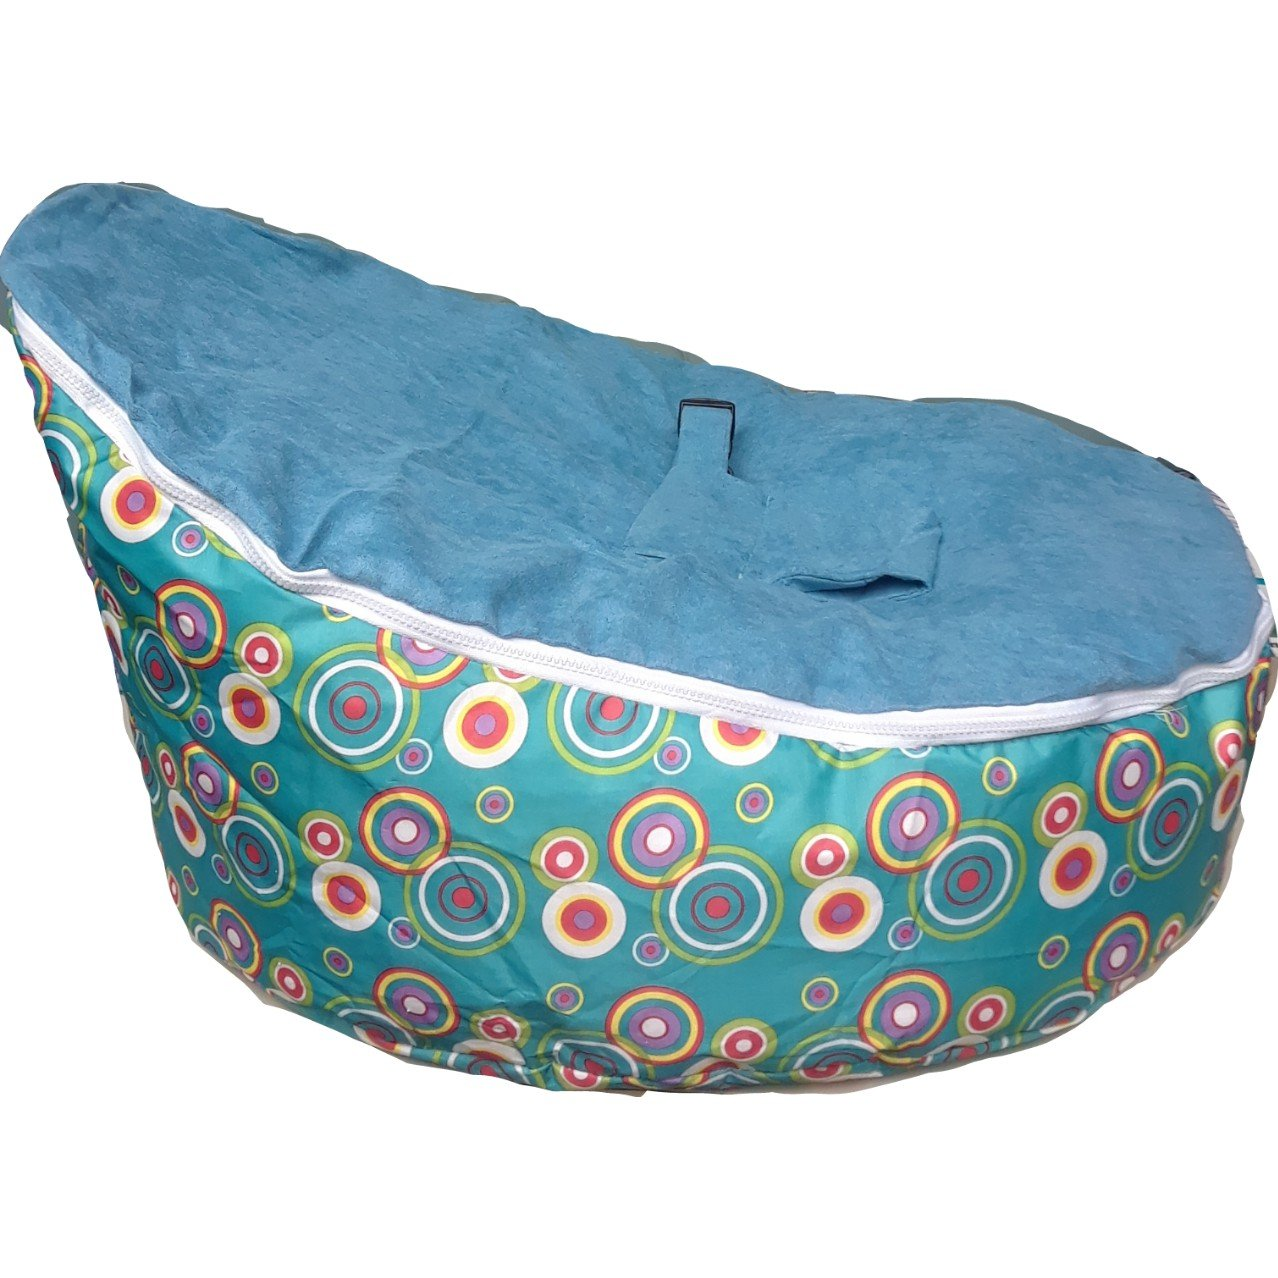 Babybooper Soft Baby Cozy Sitting Chair Nursery Pillow Safe Bean Bags, Till Green, One Size